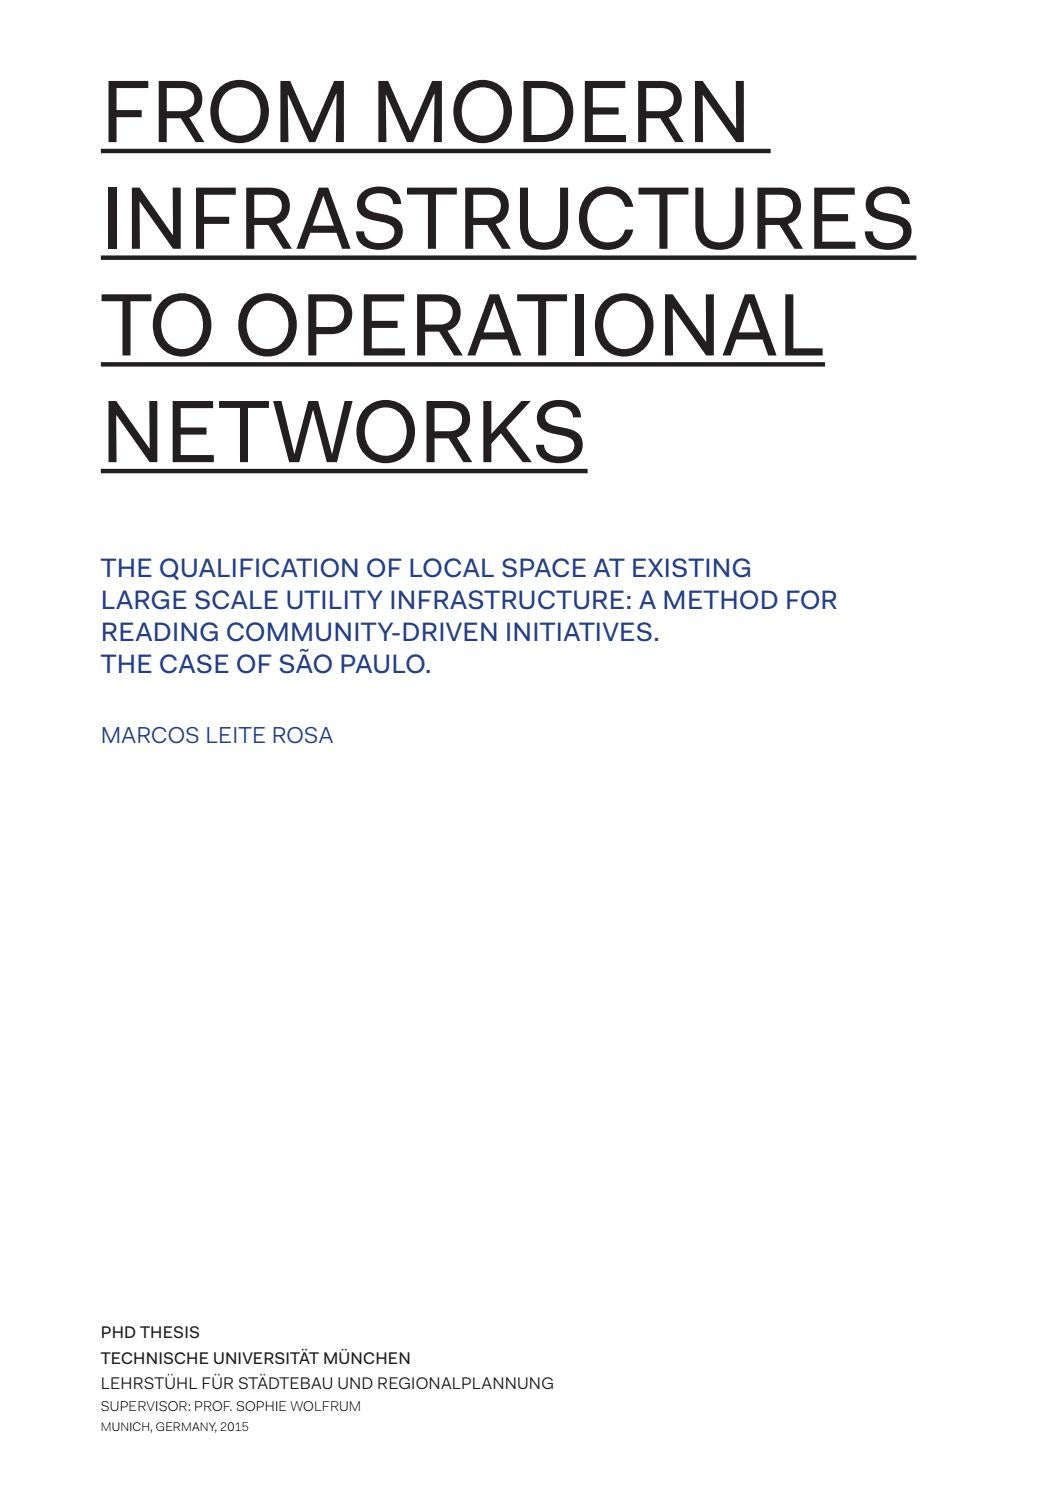 From Modern Infrastructures to Operational Networks. by marcos lros - issuu